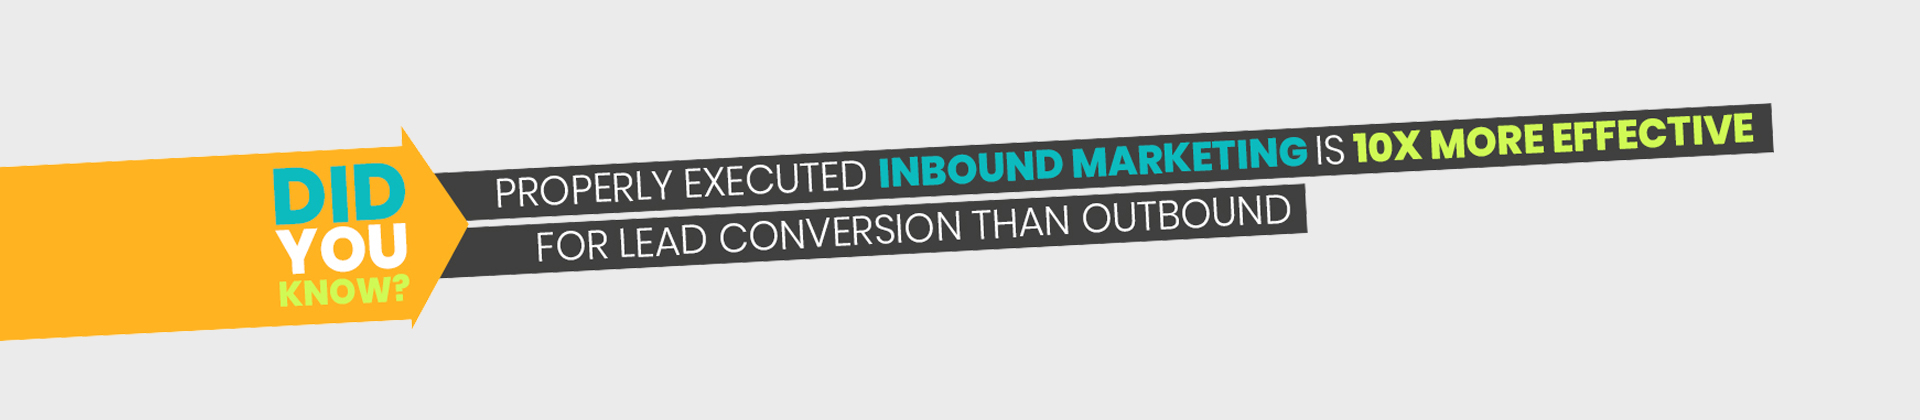 properly executed inbound marketing is 10x more effective for lead conversion than outbound v4